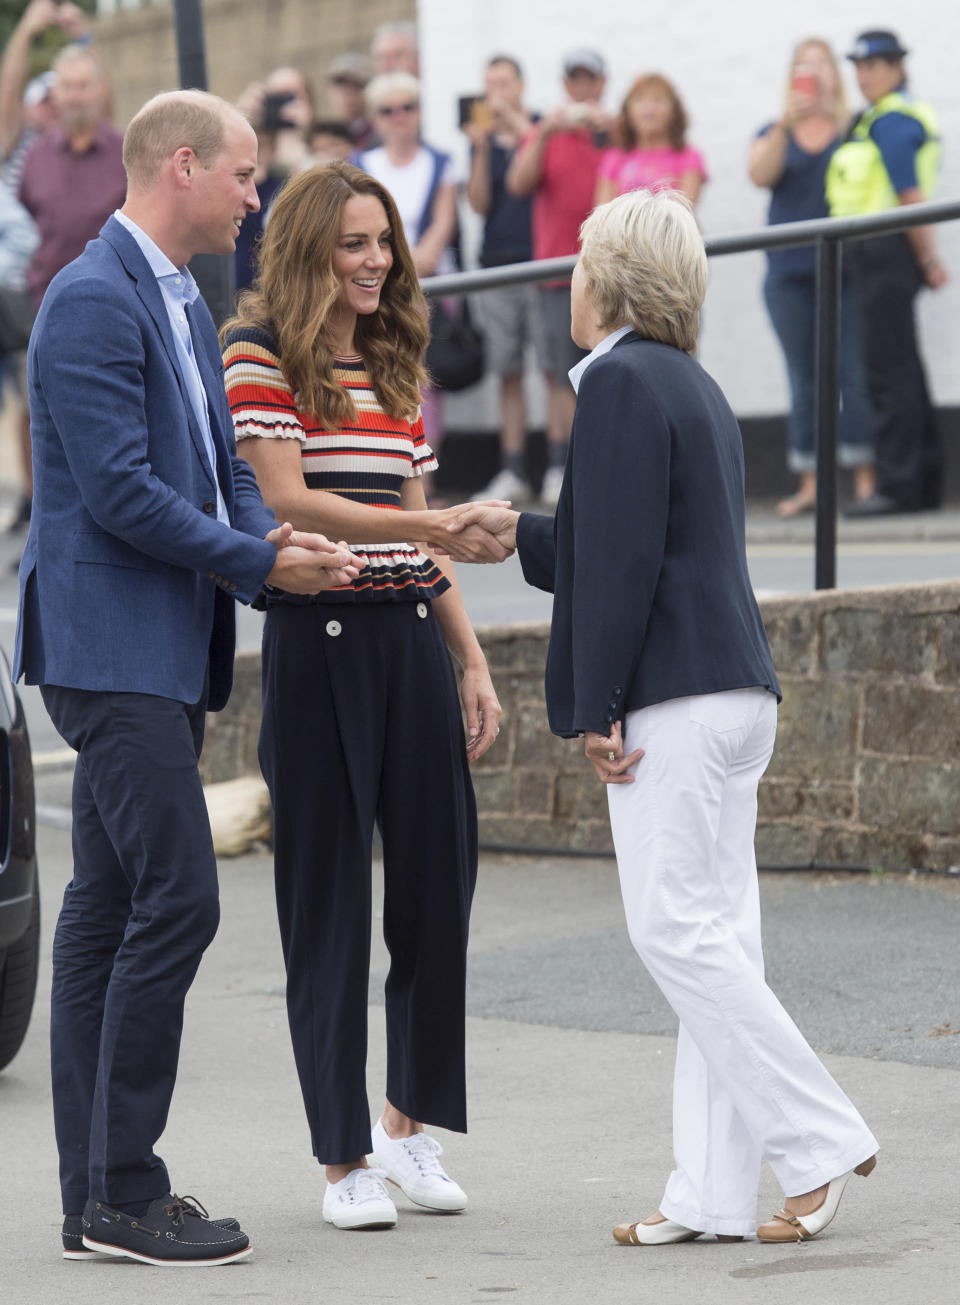 Dressed in a chic pair of wide-leg trousers and a colorful striped top, the stylish royal completed her nautical look with her favorite summer sneakers. (Photo: Getty Images)